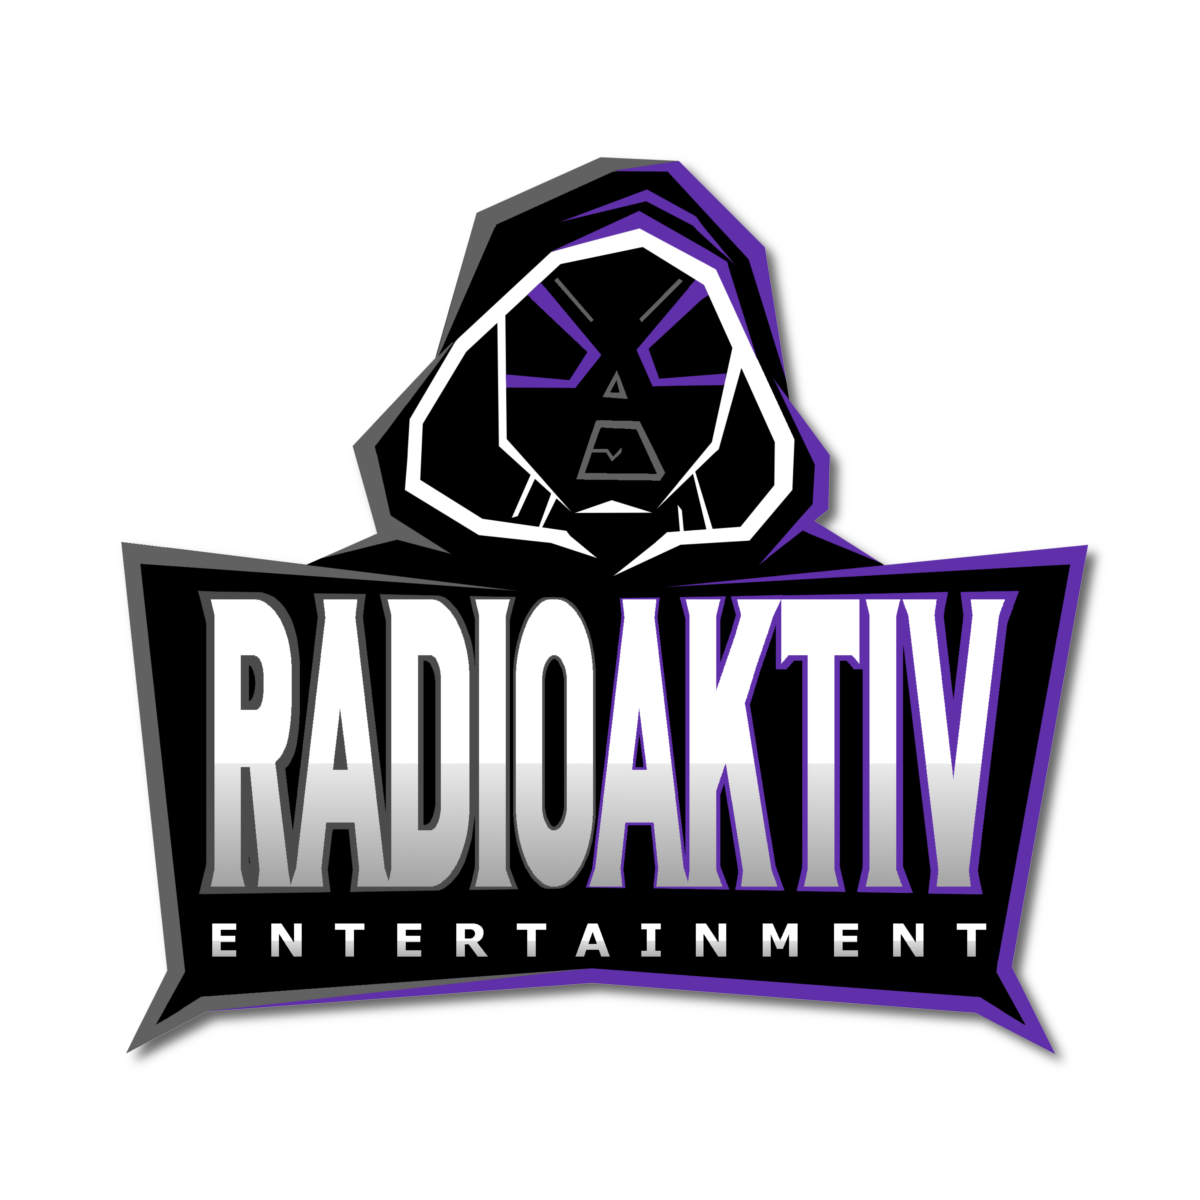 Logo Radioaktiv Entertainment - Deutsche Gaming Community